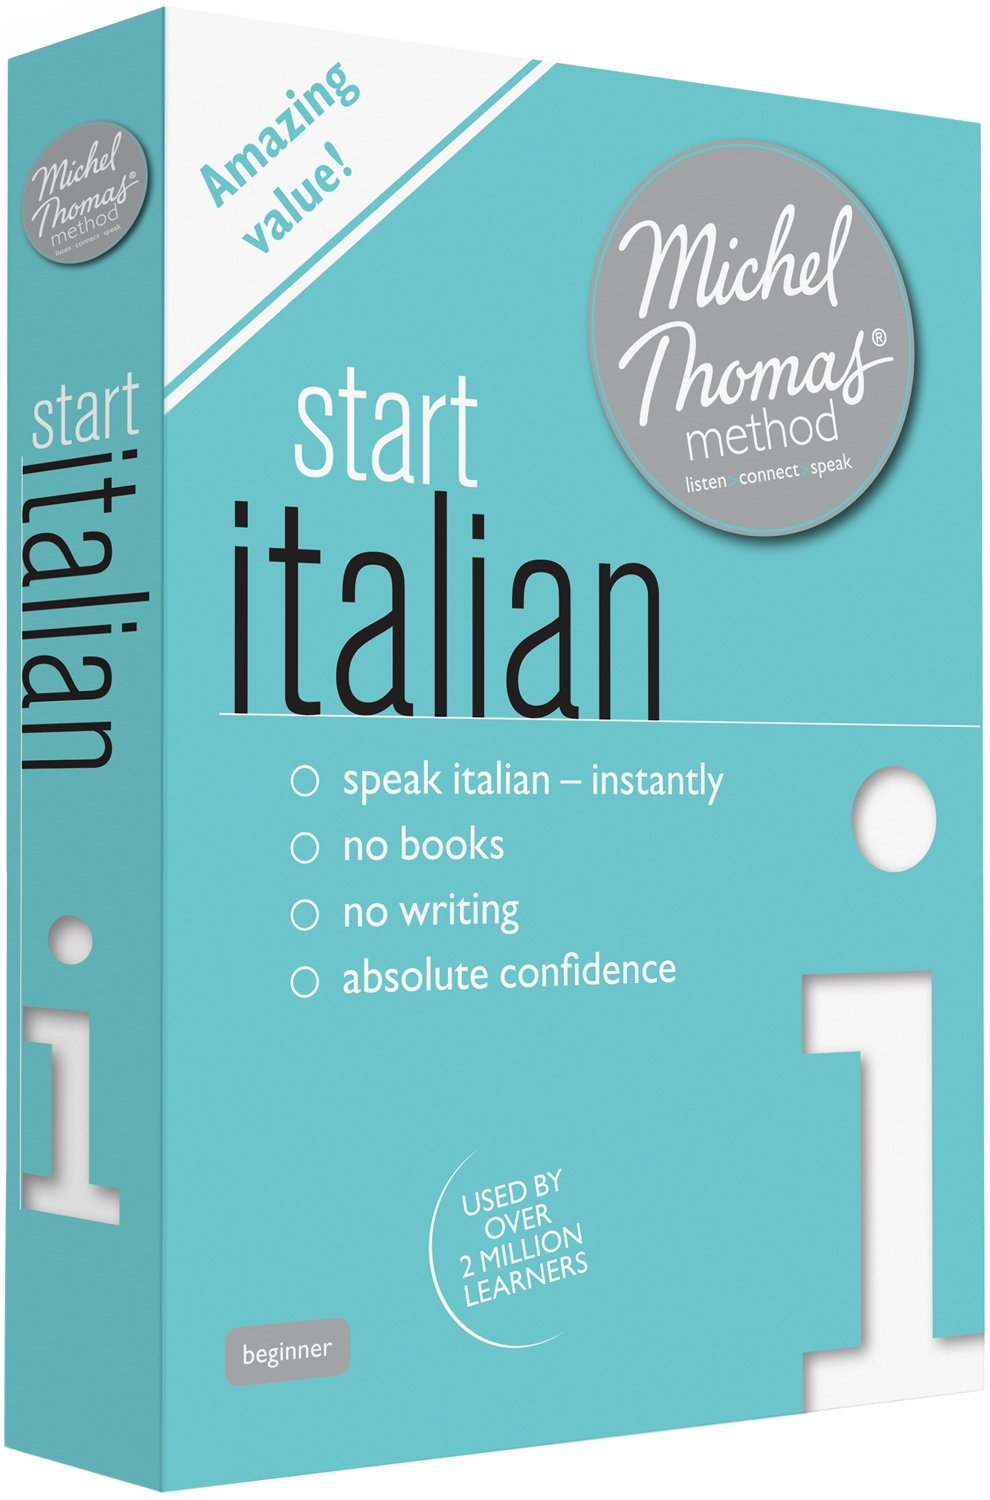 Start Italian (Learn Italian with the Michel Thomas Method): Amazon ...